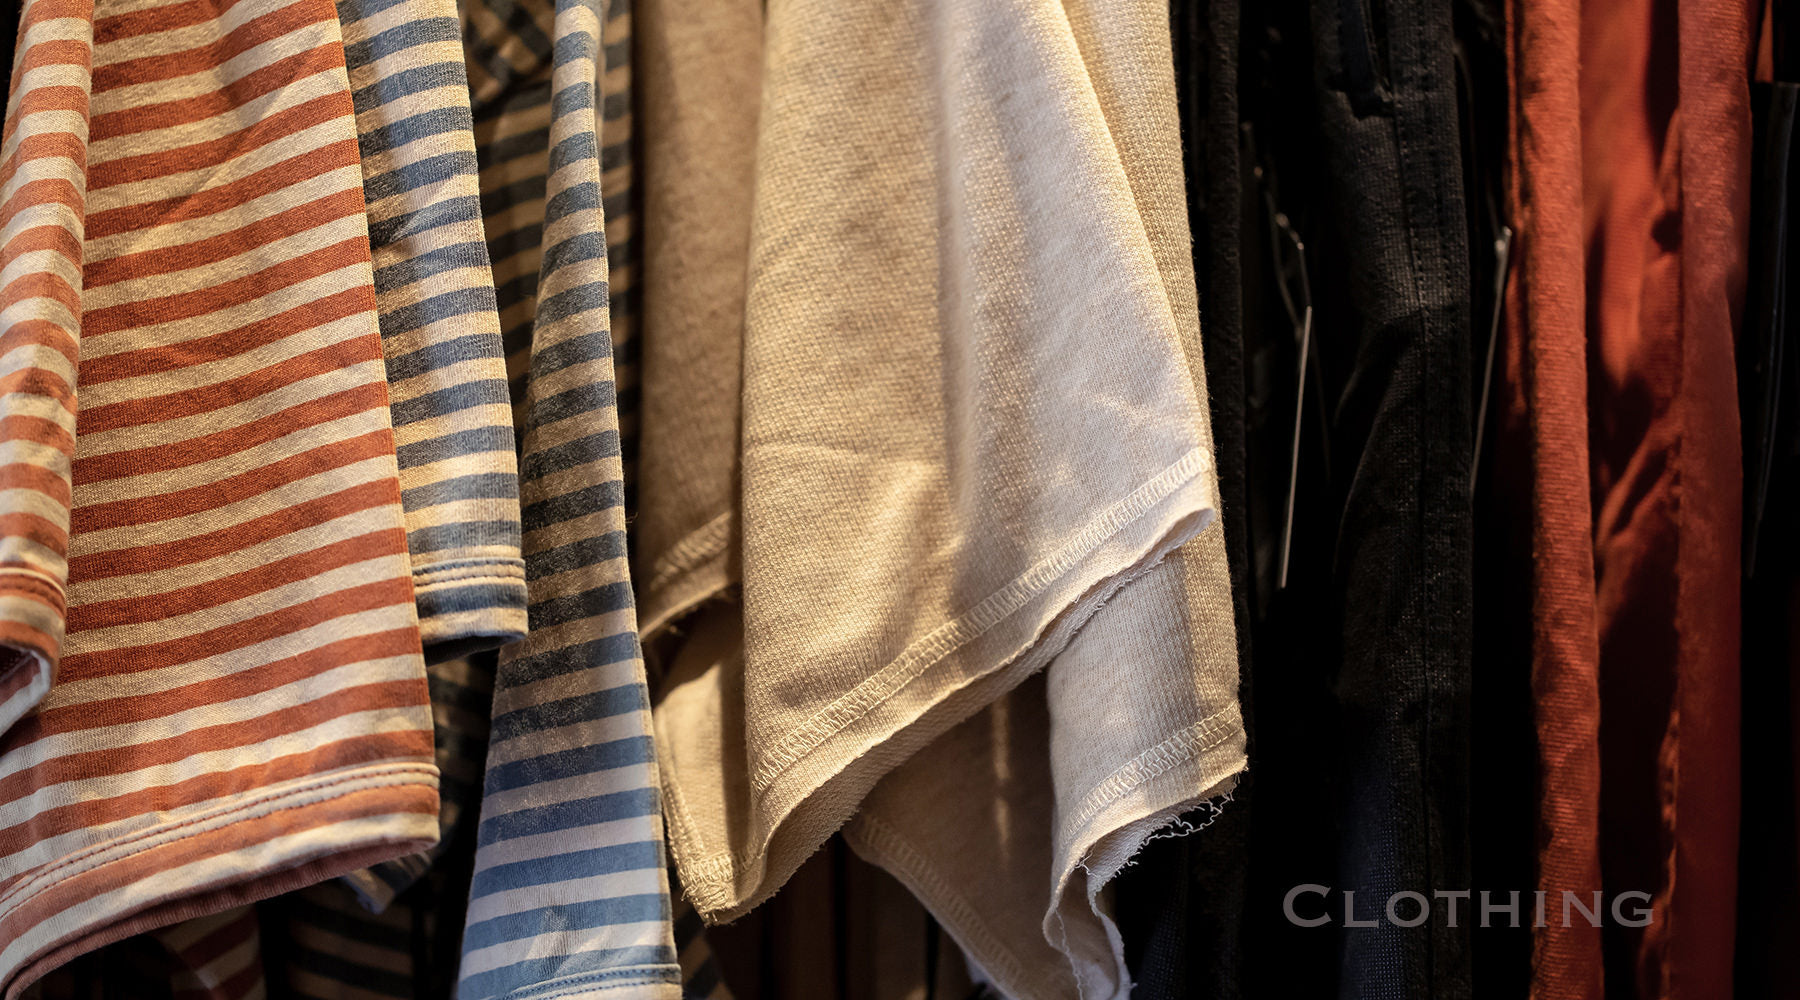 Photo of Assorted Clothing Items as a banner Image